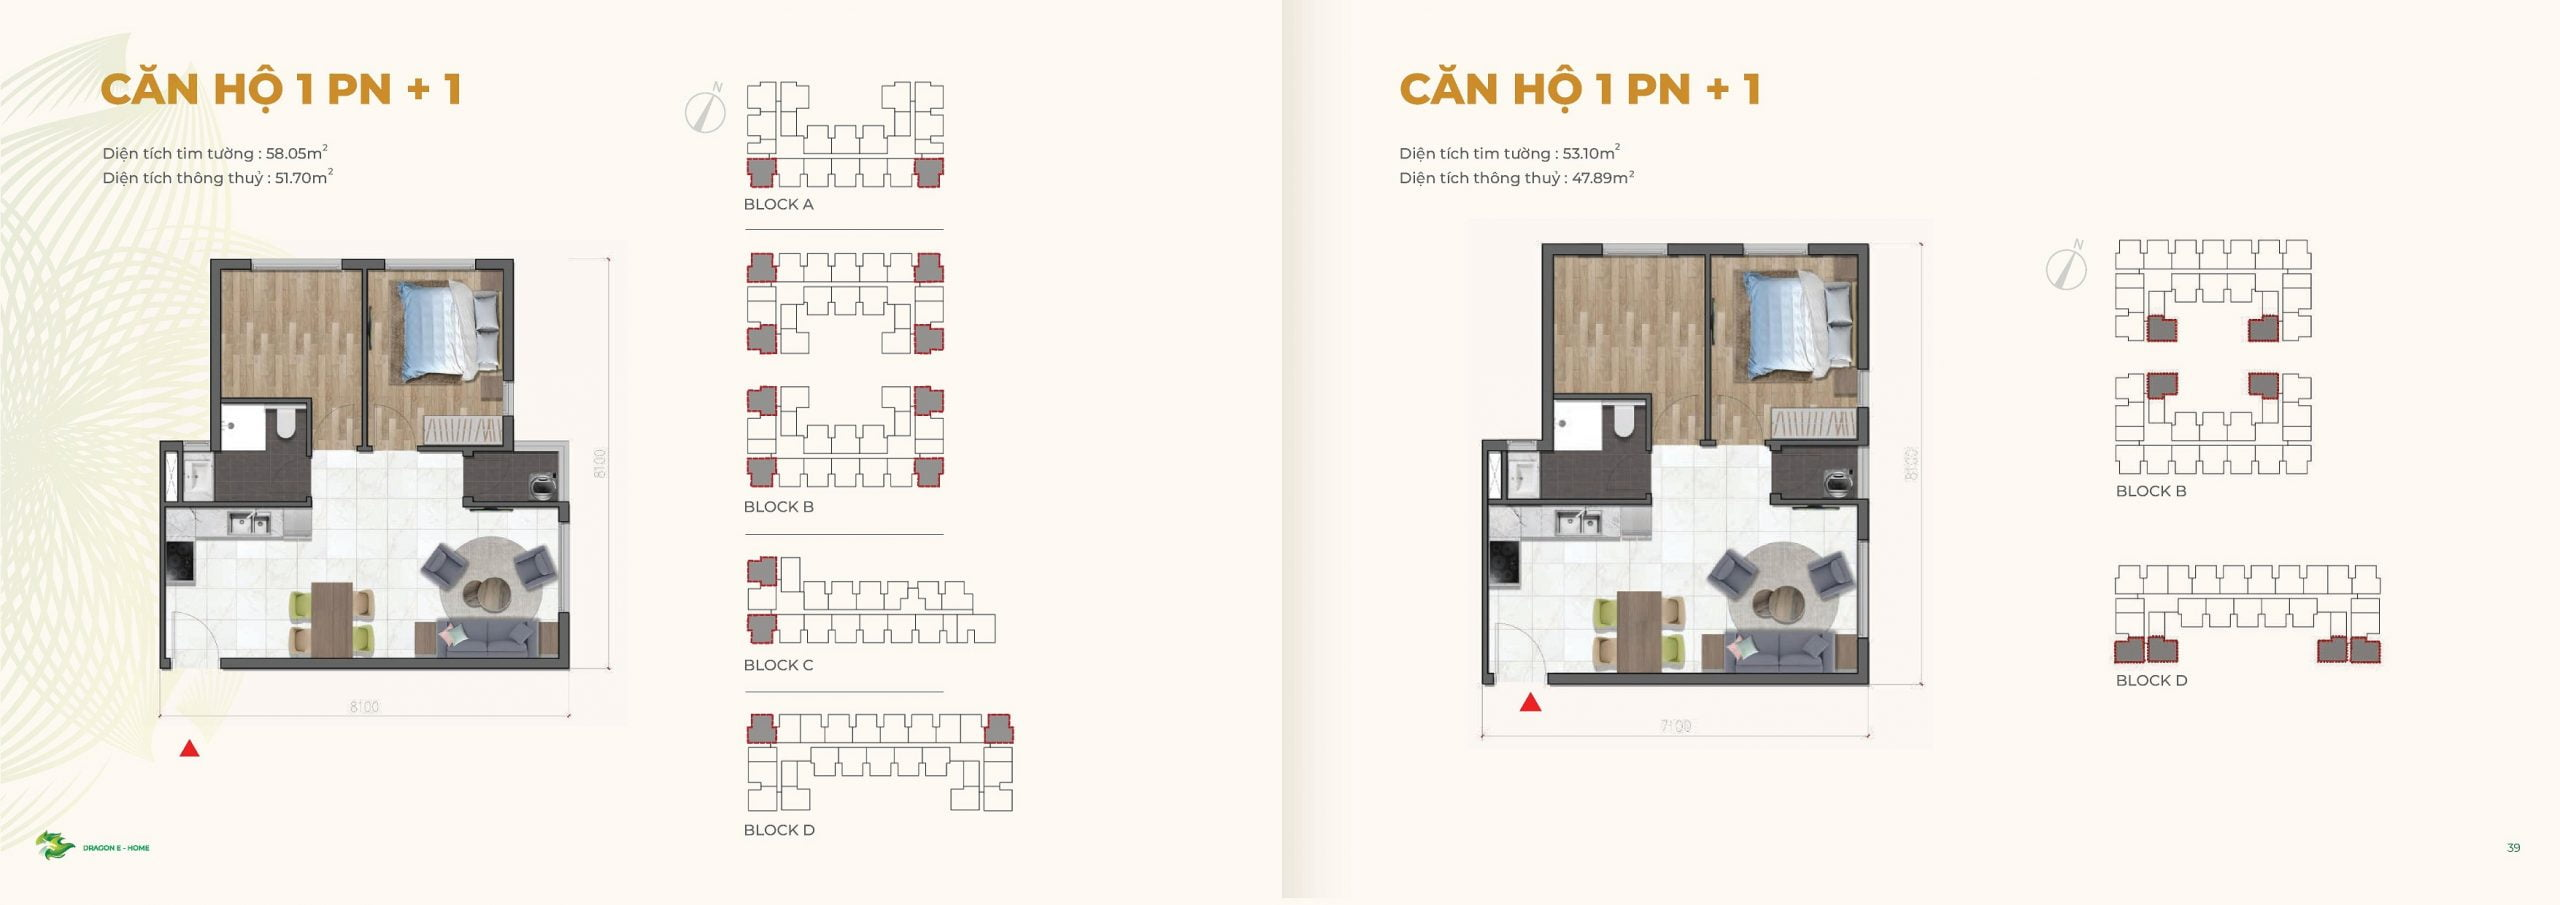 can ho 1PN +1 58m2 Dragon Ehome